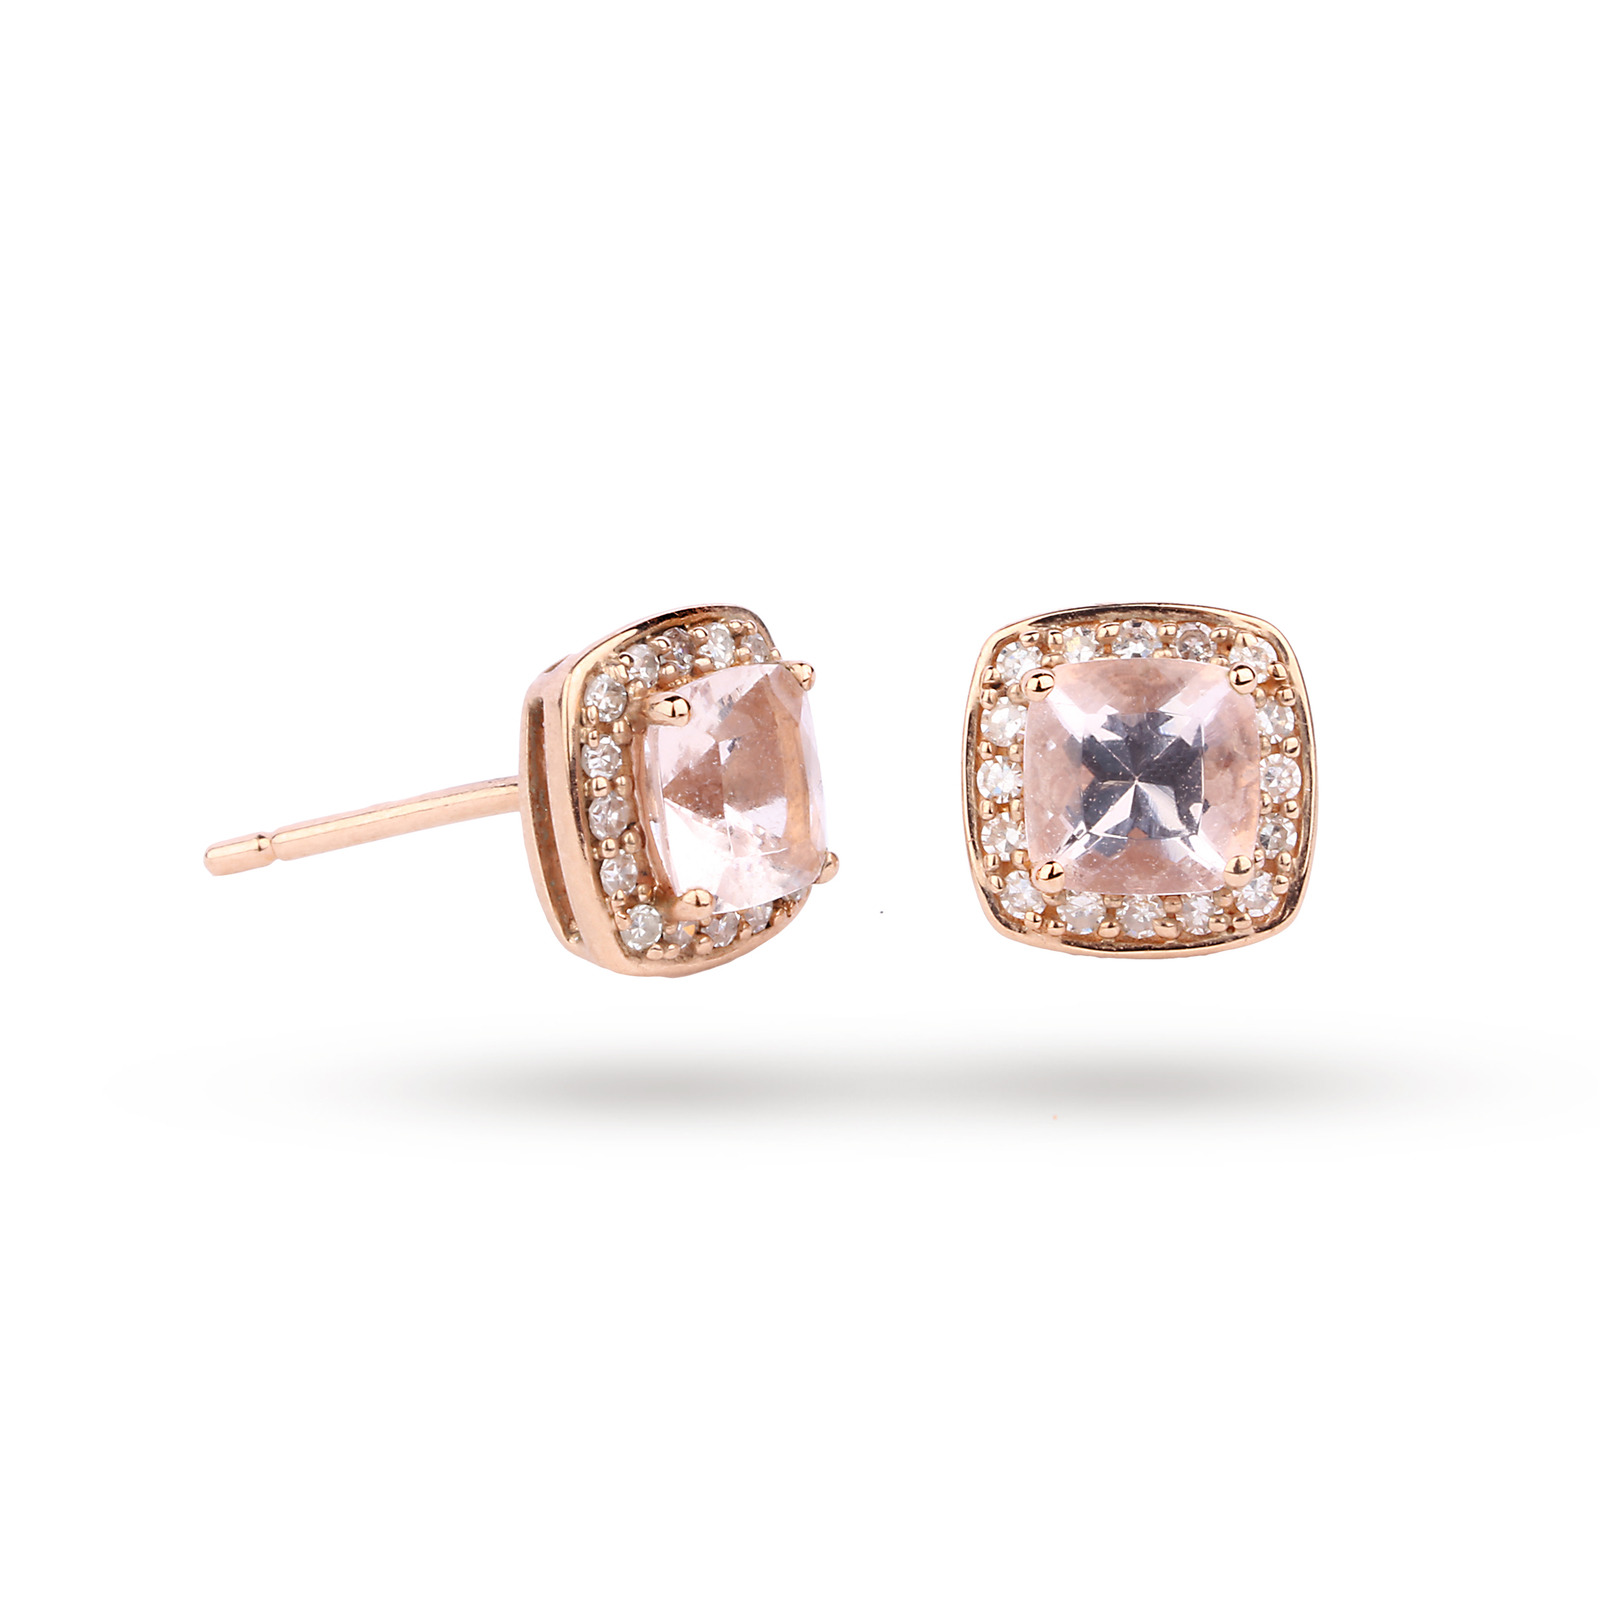 earrings sl round morganite mothers rose gold natural itm jewelry fine day stud aaa